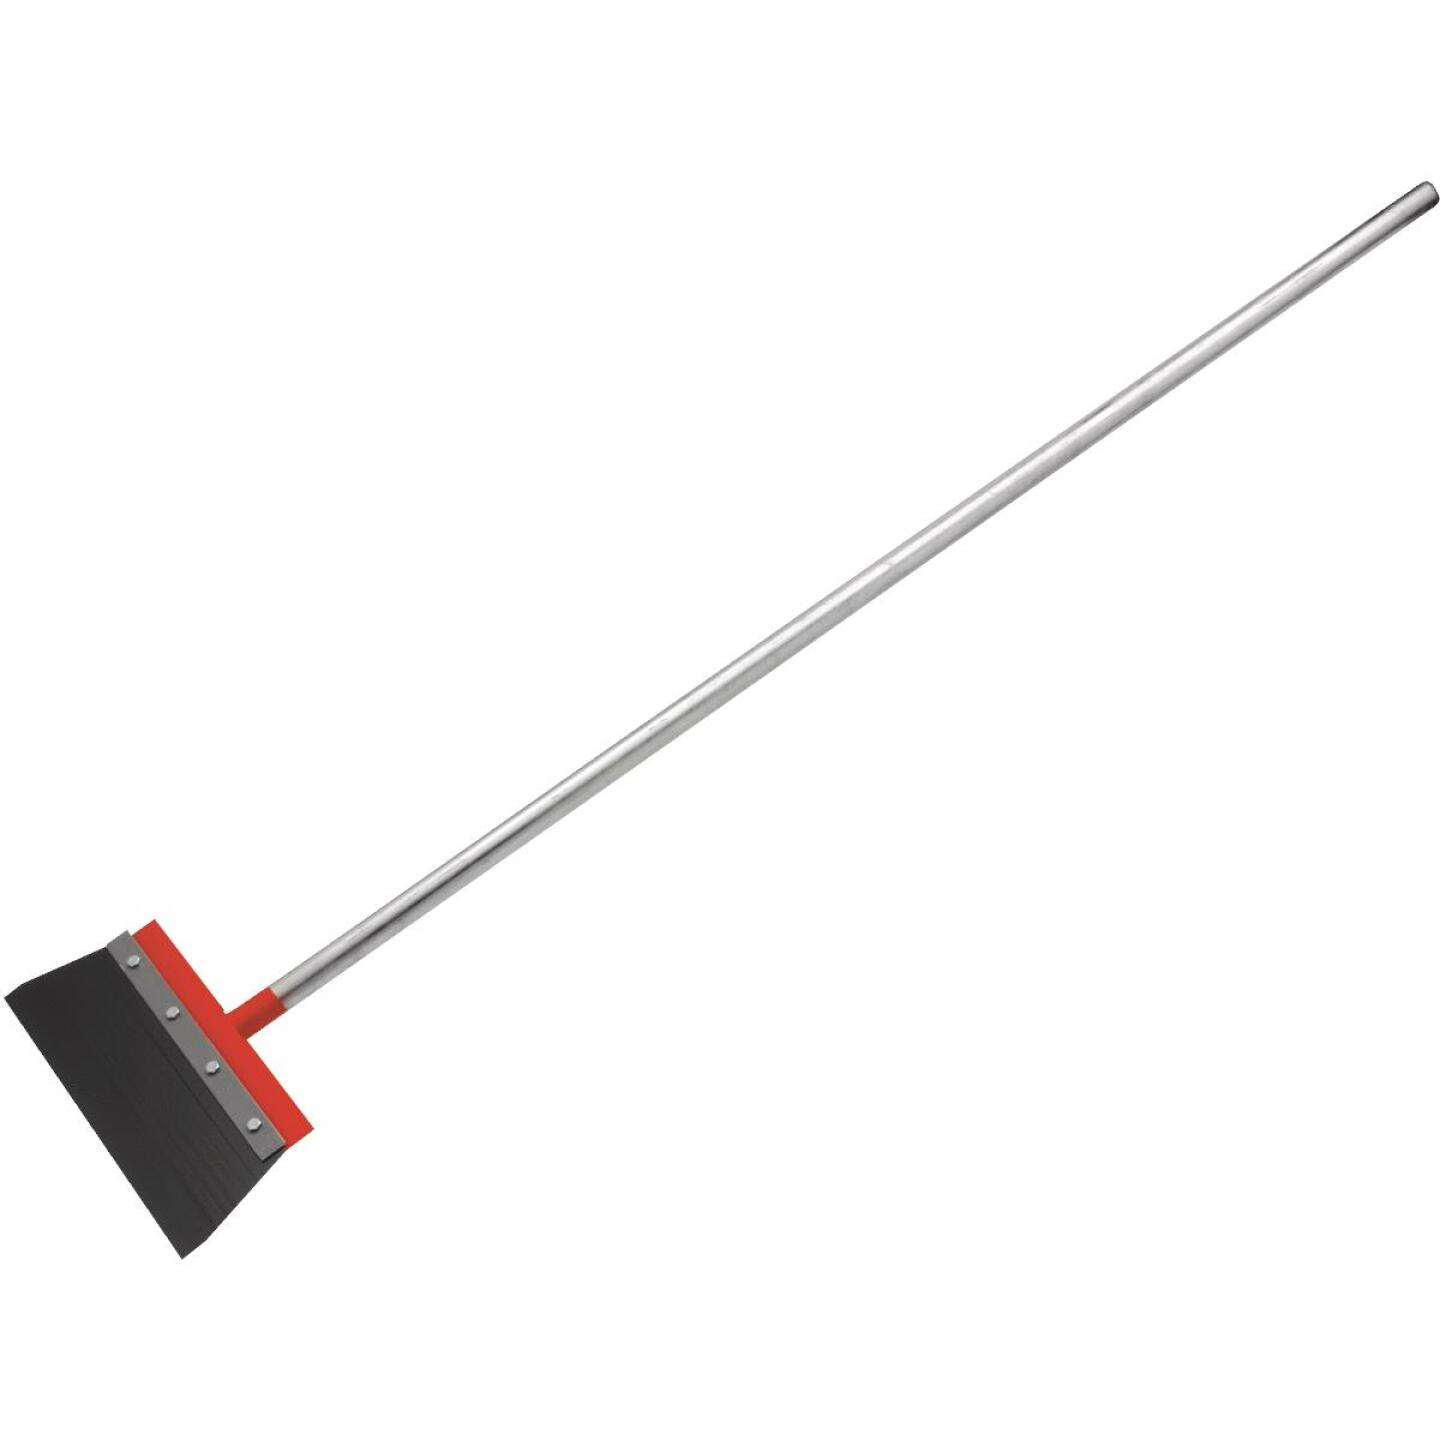 QEP 14 In. x 5 Ft. Carbon Steel Floor and Wall Scraper Image 1